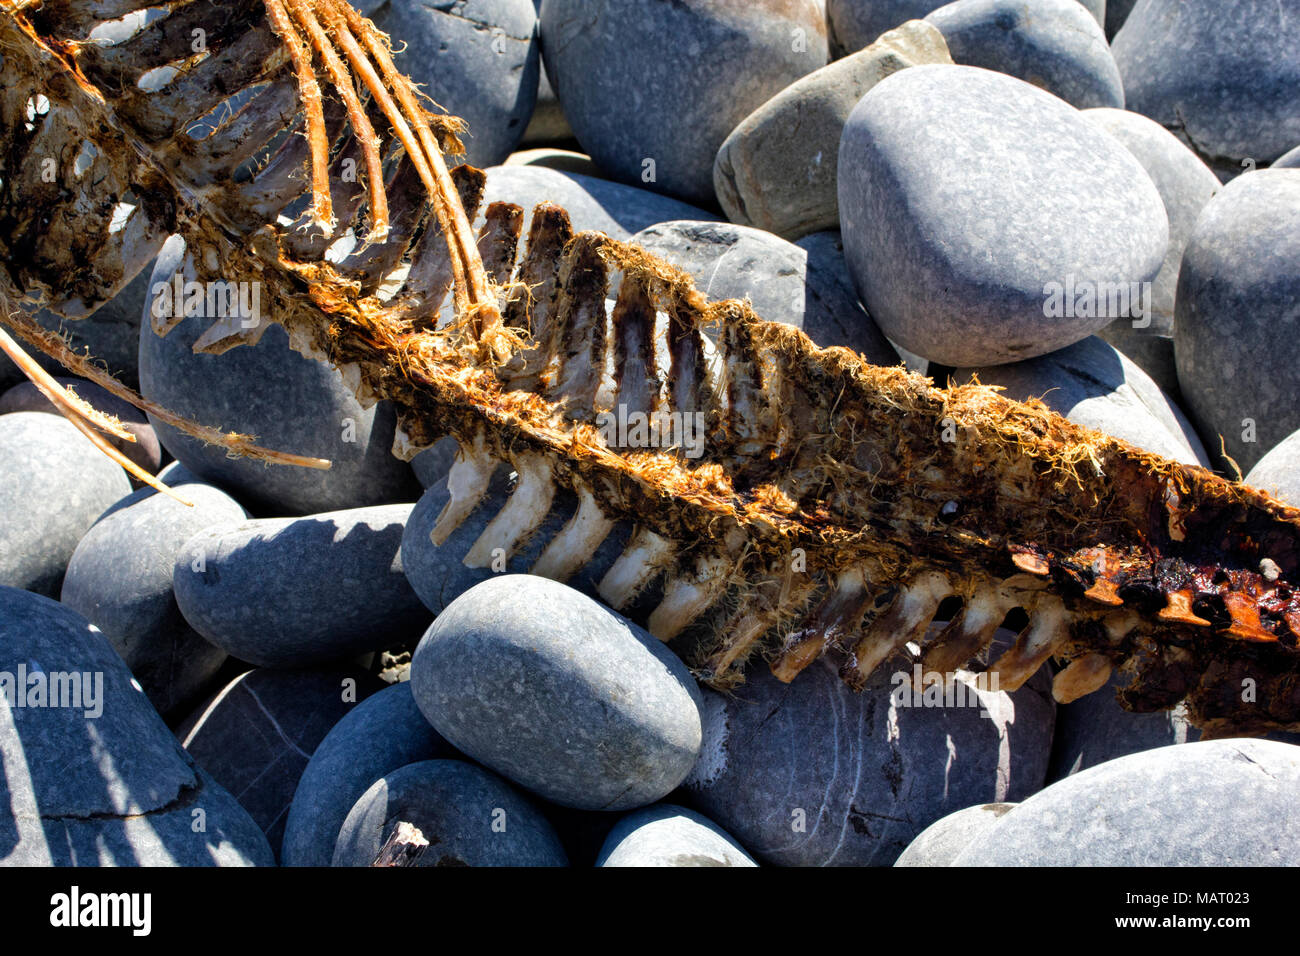 Detailed Vertebrae Section of a Grey Seal Skeleton washed up on Greencliff Beach in North Devon. - Stock Image